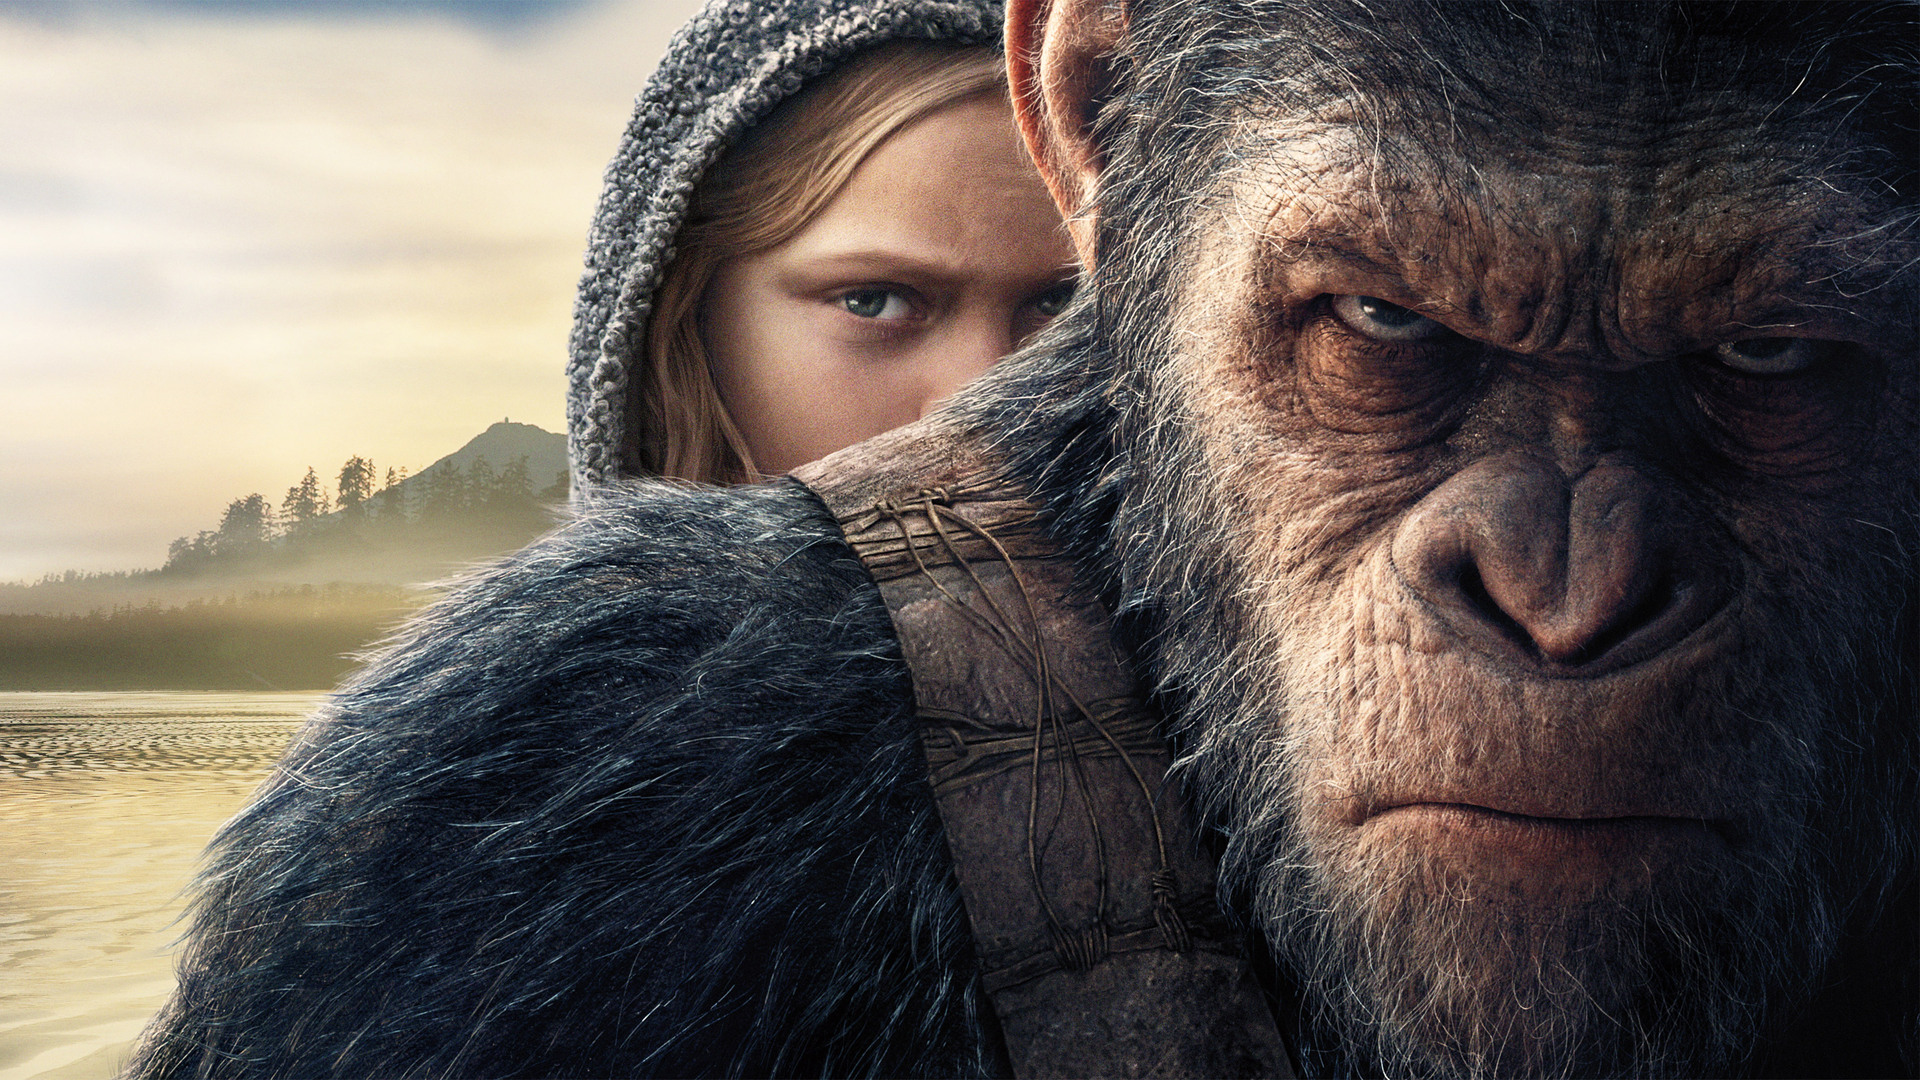 1920x1080 2017 War For The Planet Of The Apes Laptop Full Hd 1080p